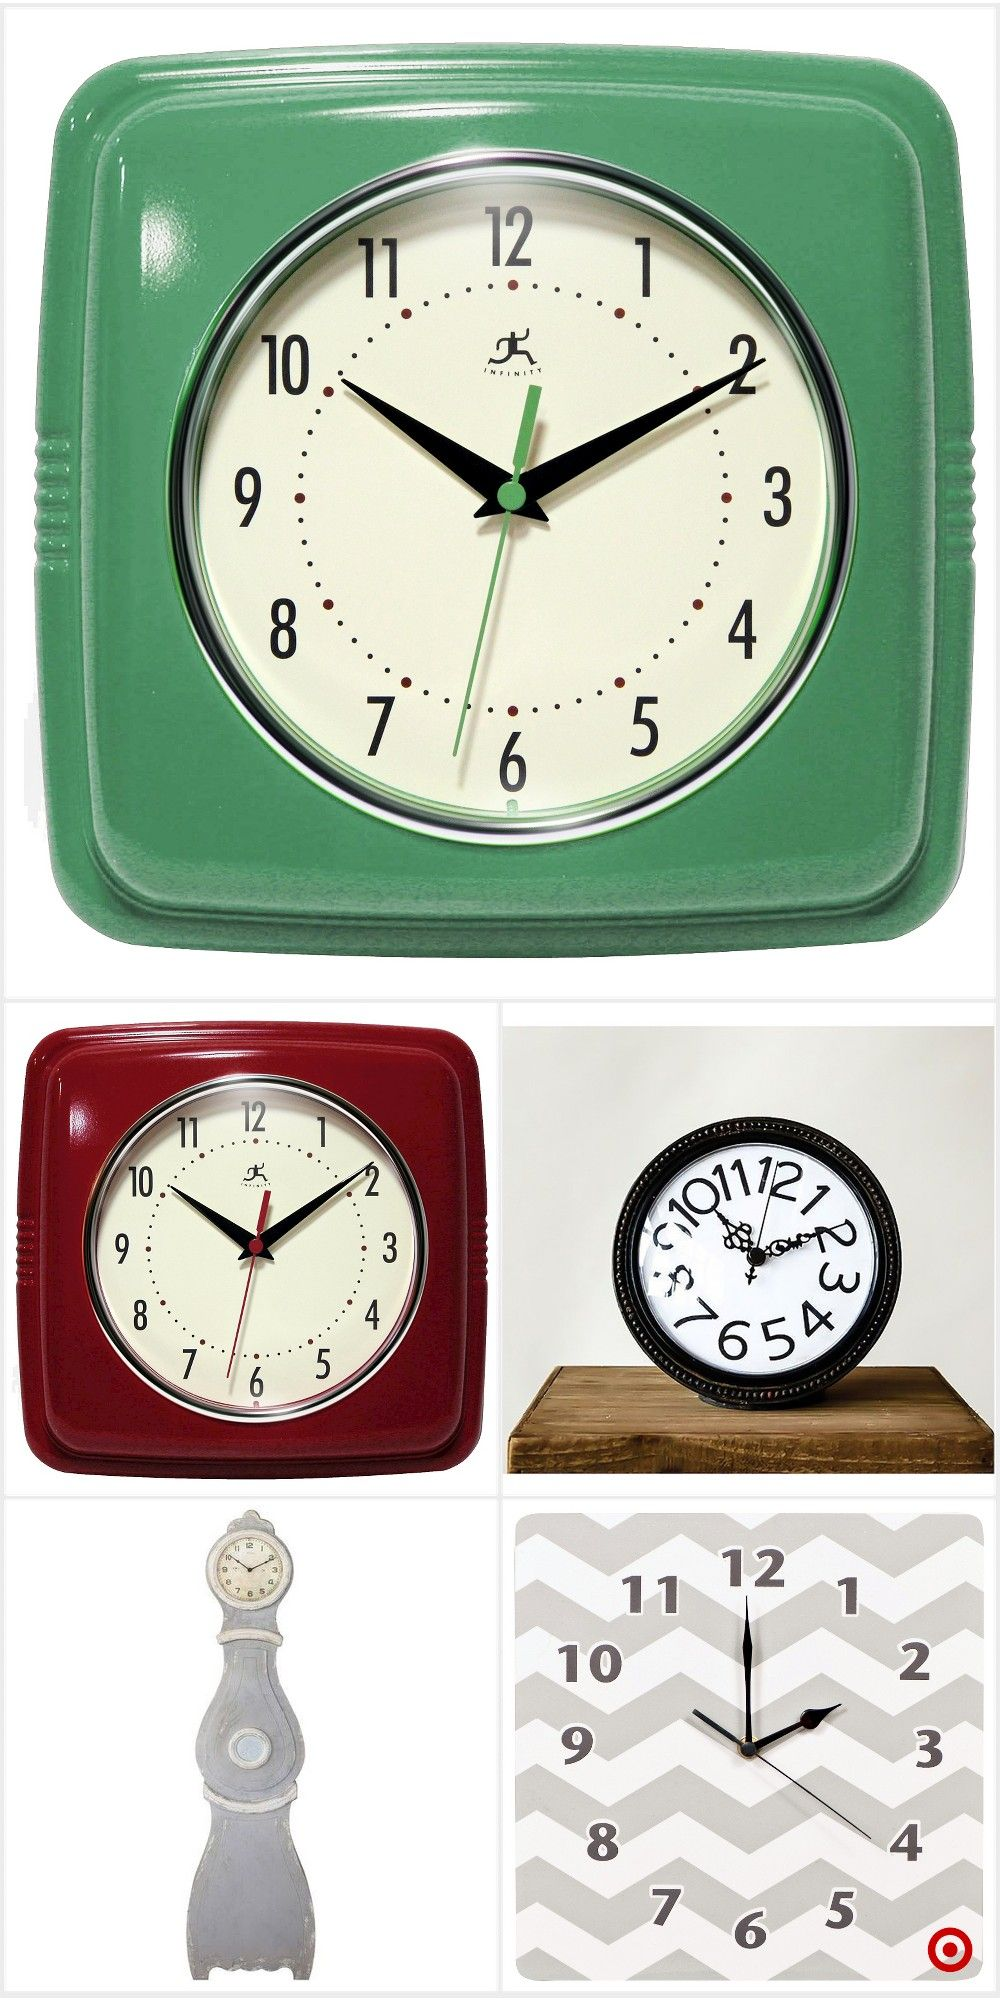 Shop Target For Decorative Clocks You Will Love At Great Low Prices